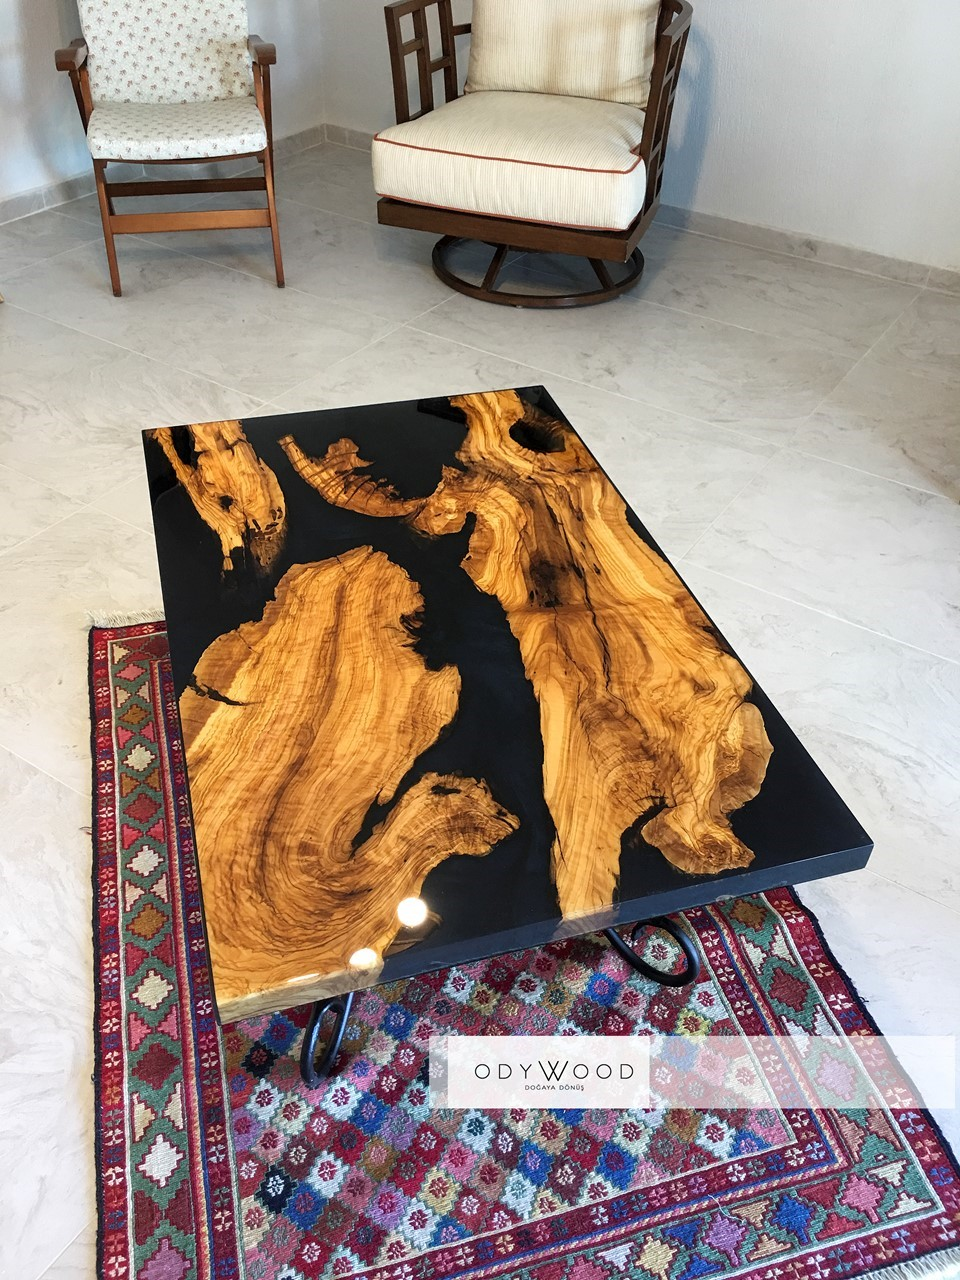 Live Edge Wood Epoxy Coffee Table - Ghost Blue'in resmi